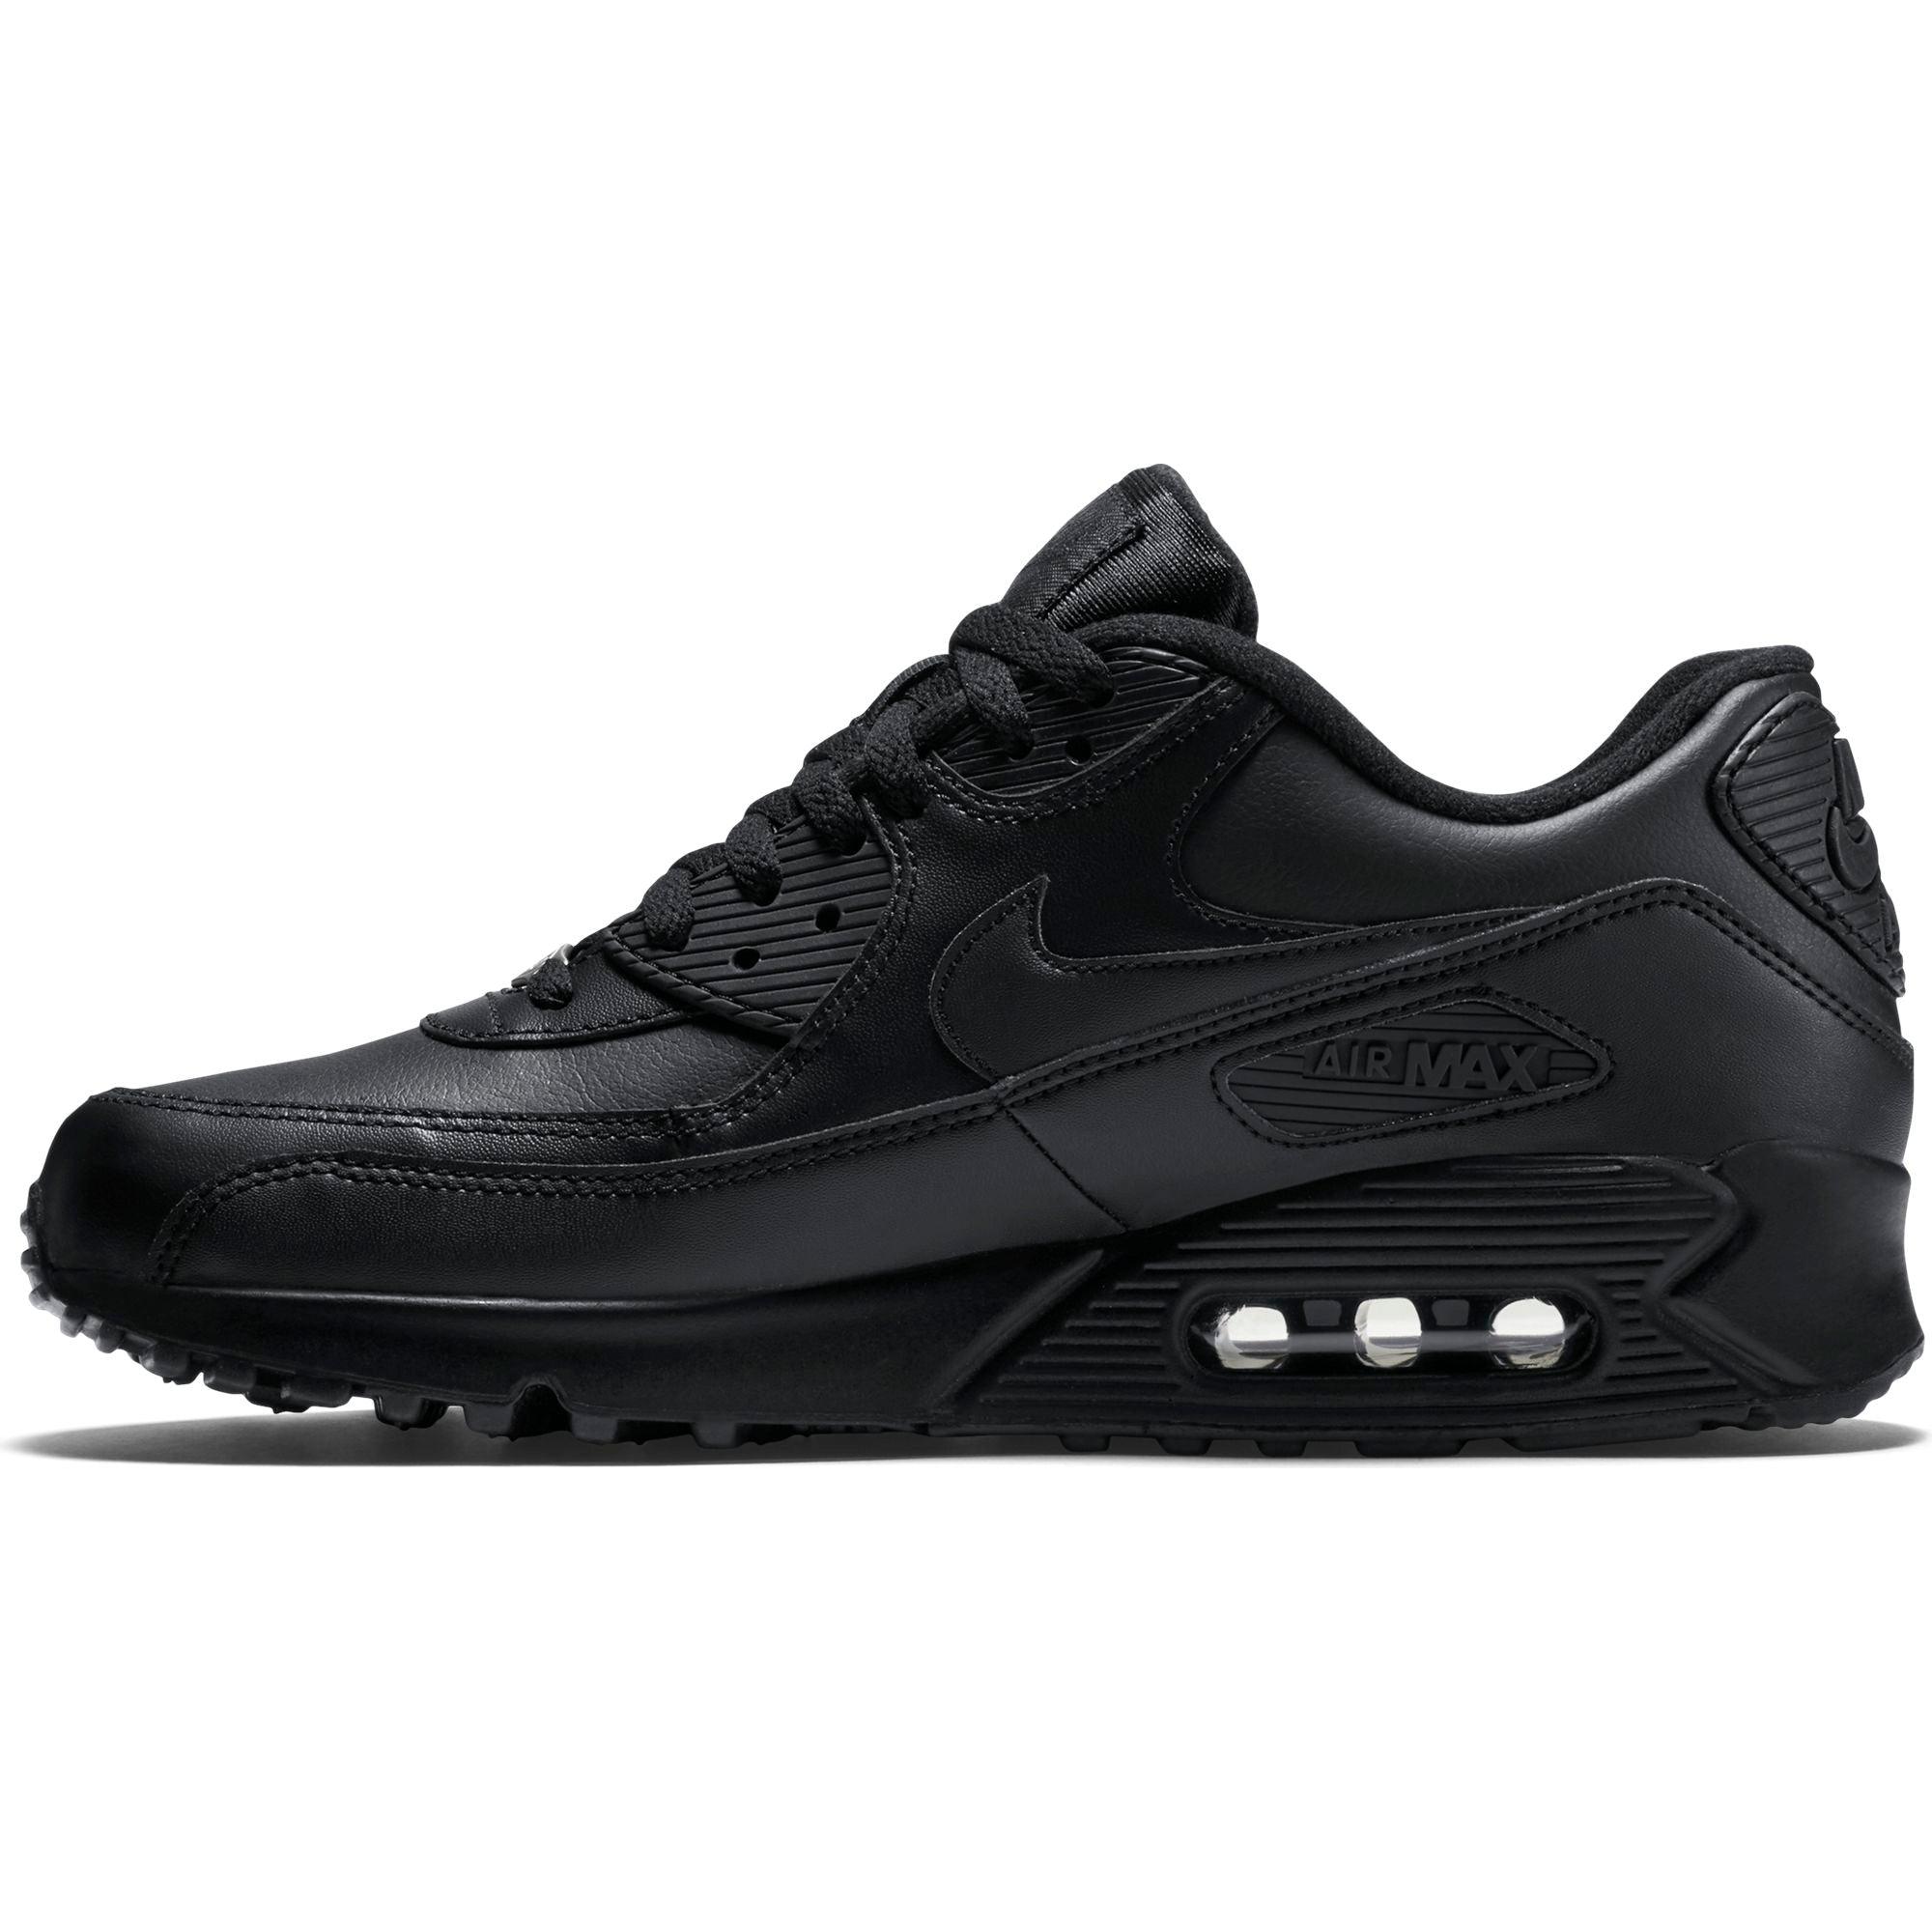 cheap for discount 8656b 8964e Nike Men s Air Max 90 Leather Sneakers, Black Black - First Clothing